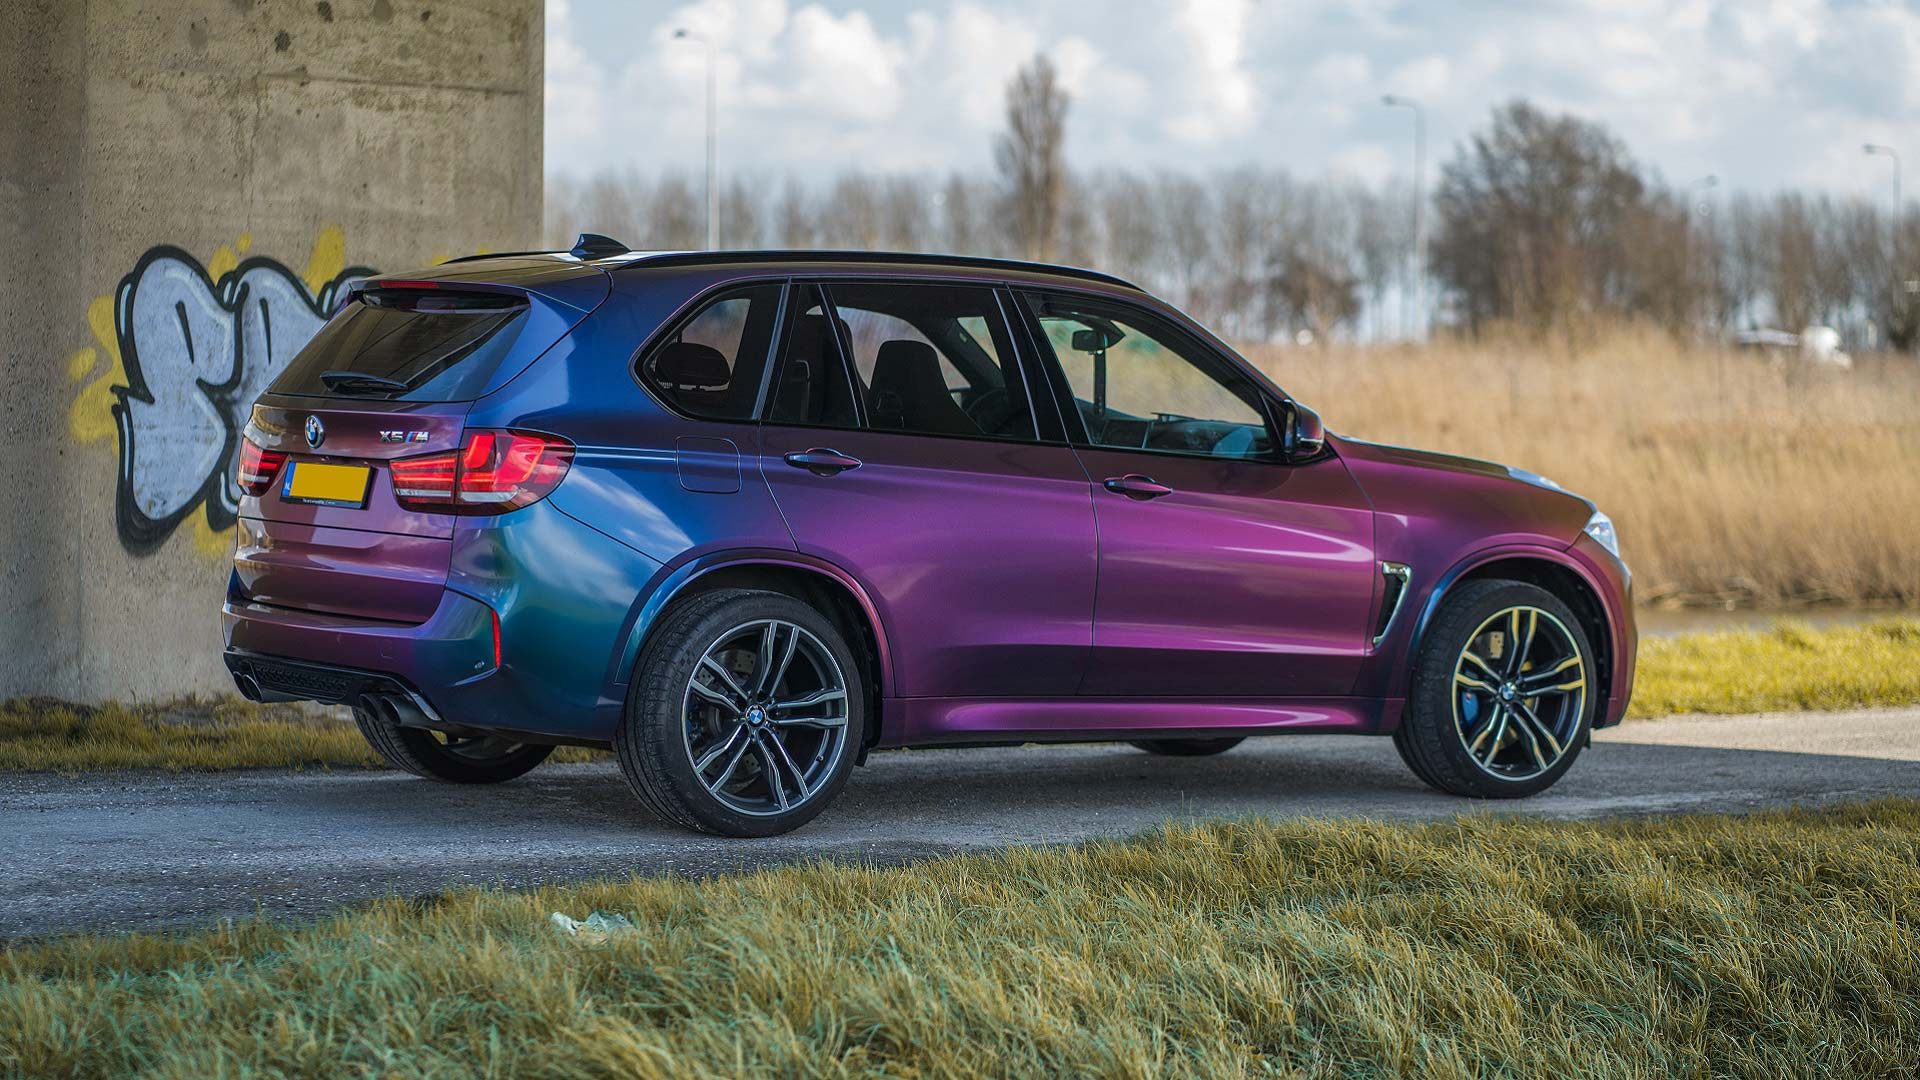 Carwrap BMW X5 met ColorFlow folie